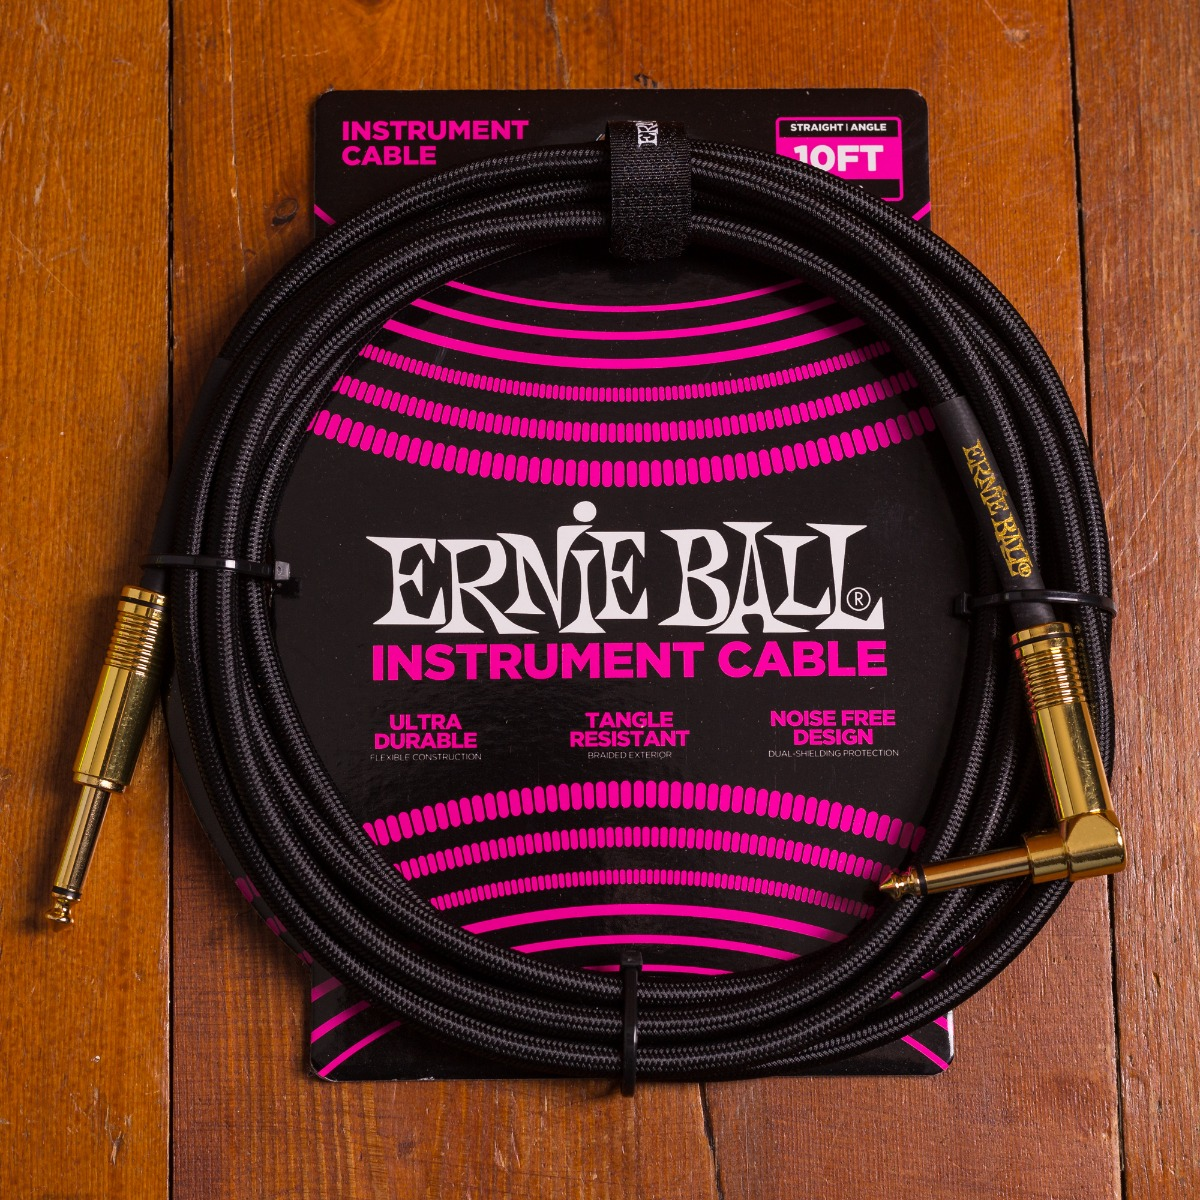 Ernie Ball Braided Cable 3m Black Angled Straight